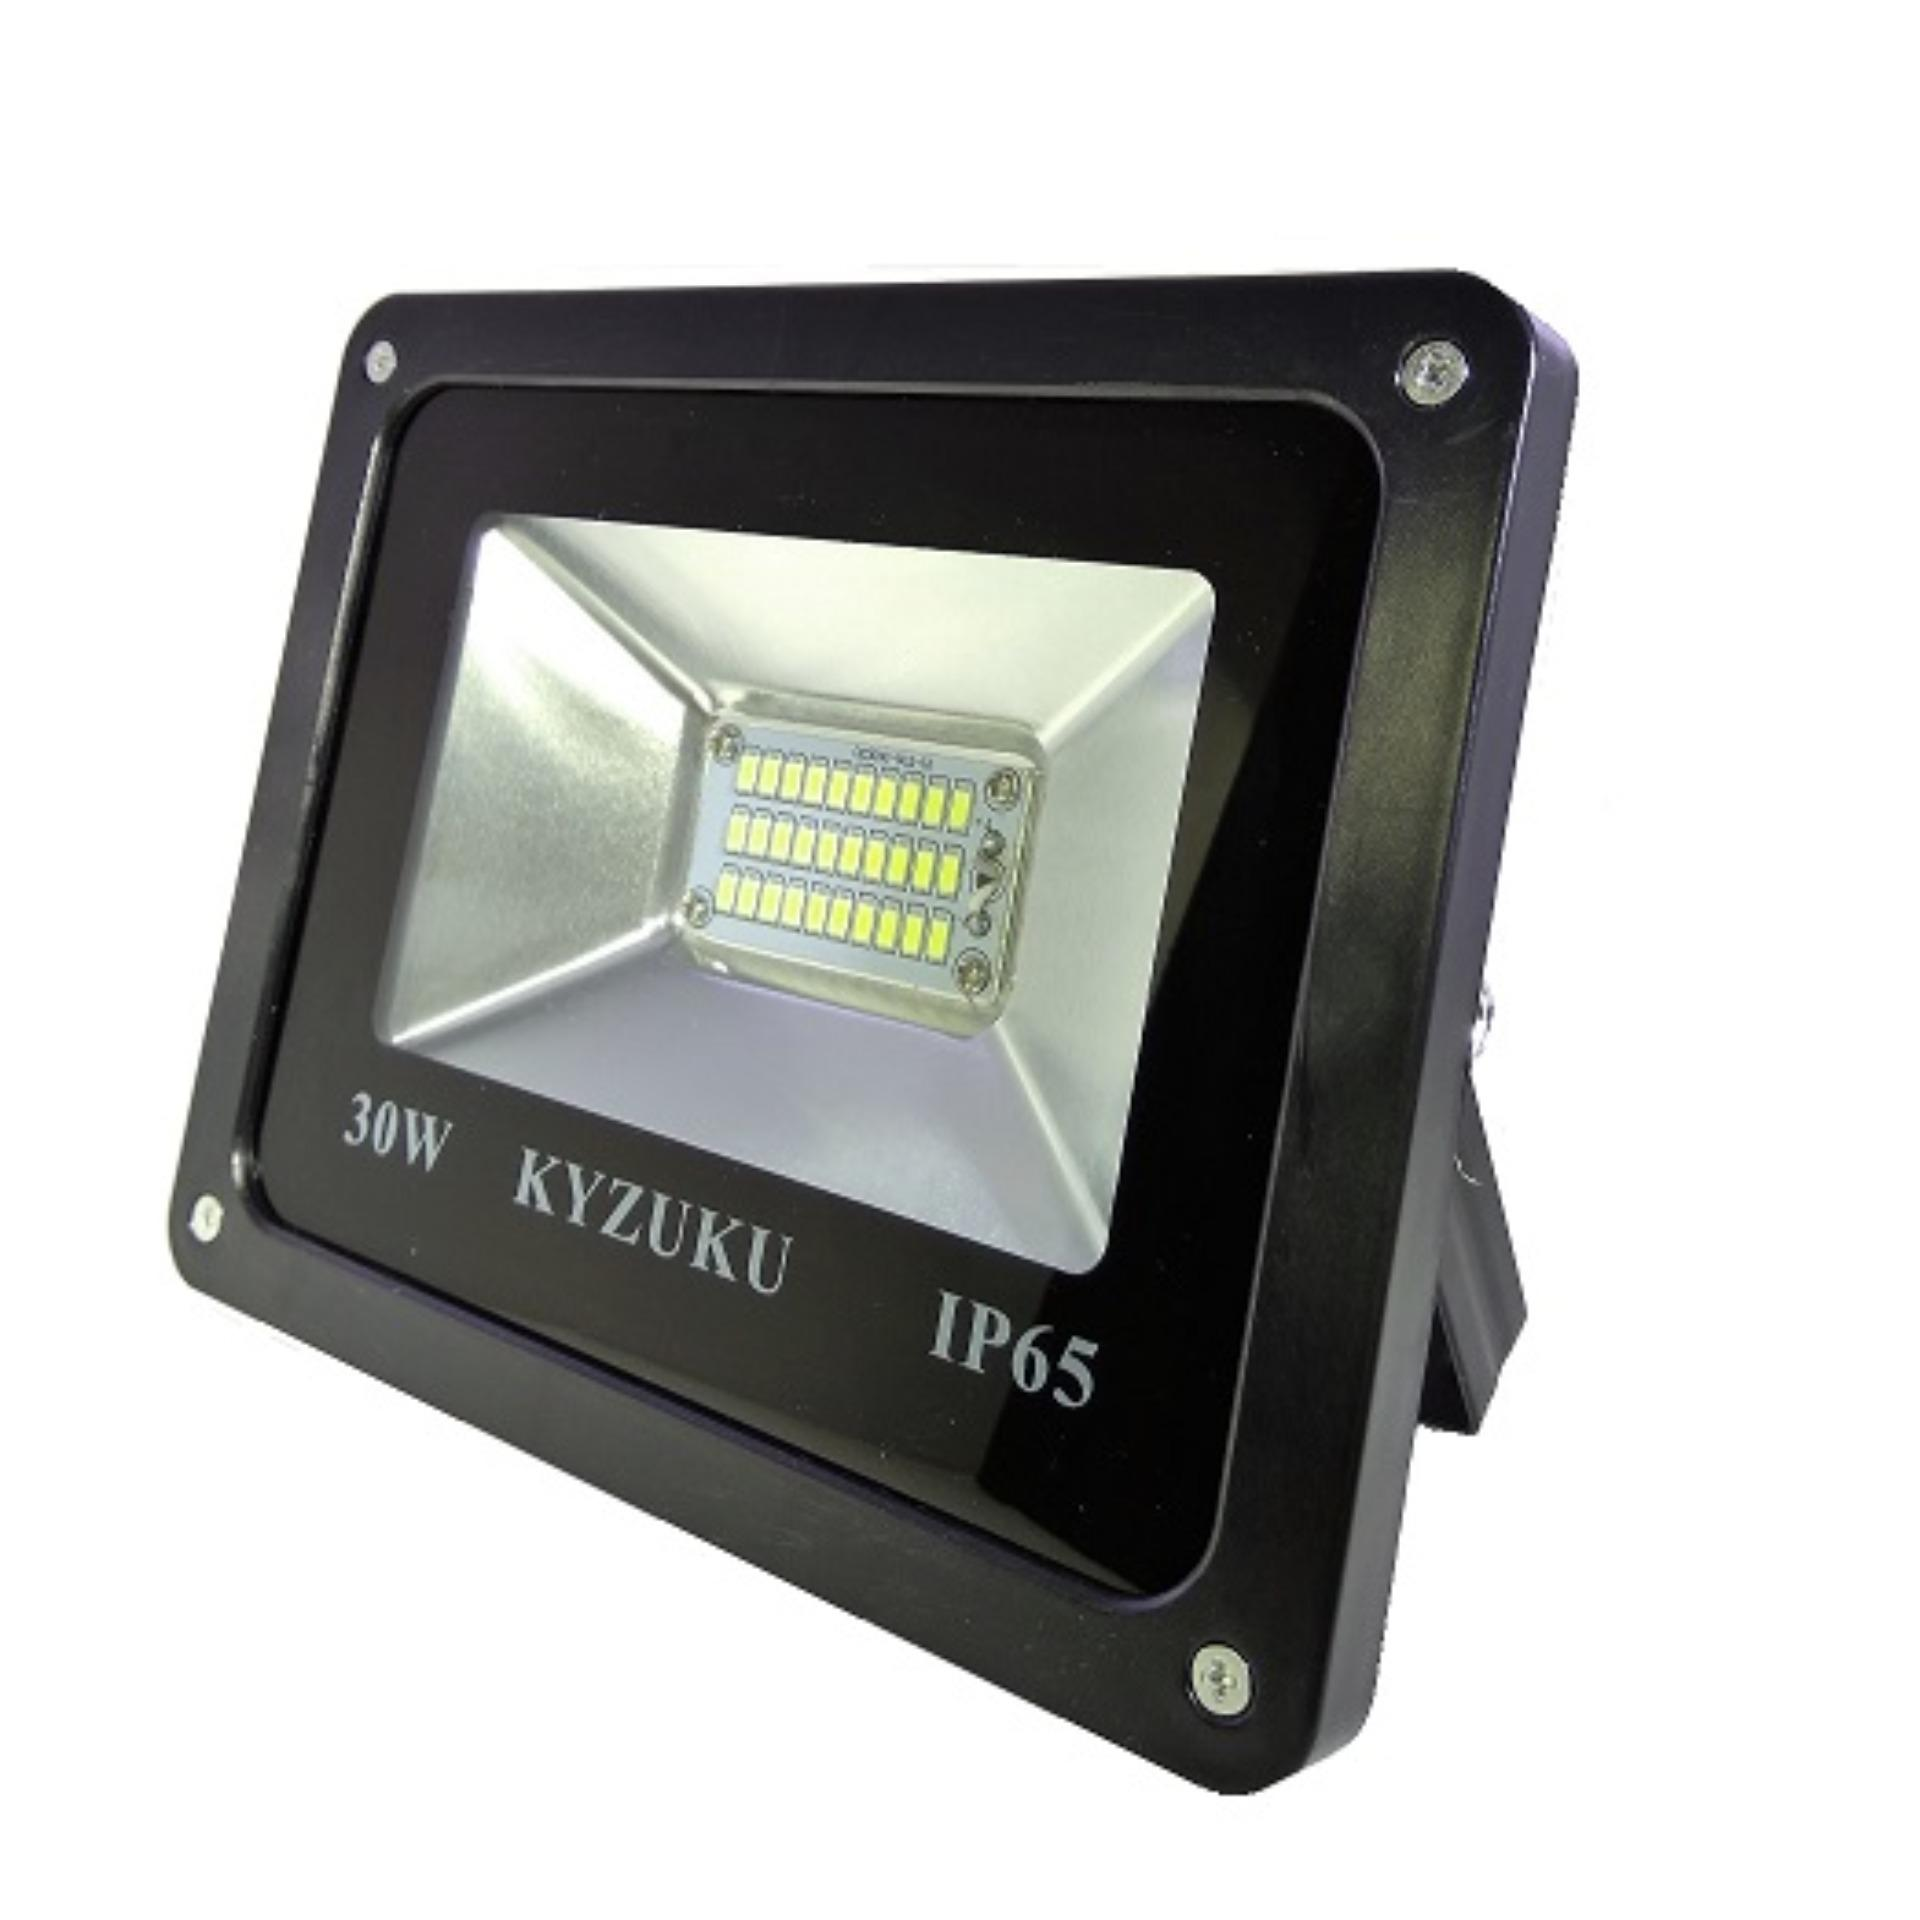 Beli Kyzuku Led Outdoor Light Lampu Sorot 30 Watt Ip65 Kyzuku